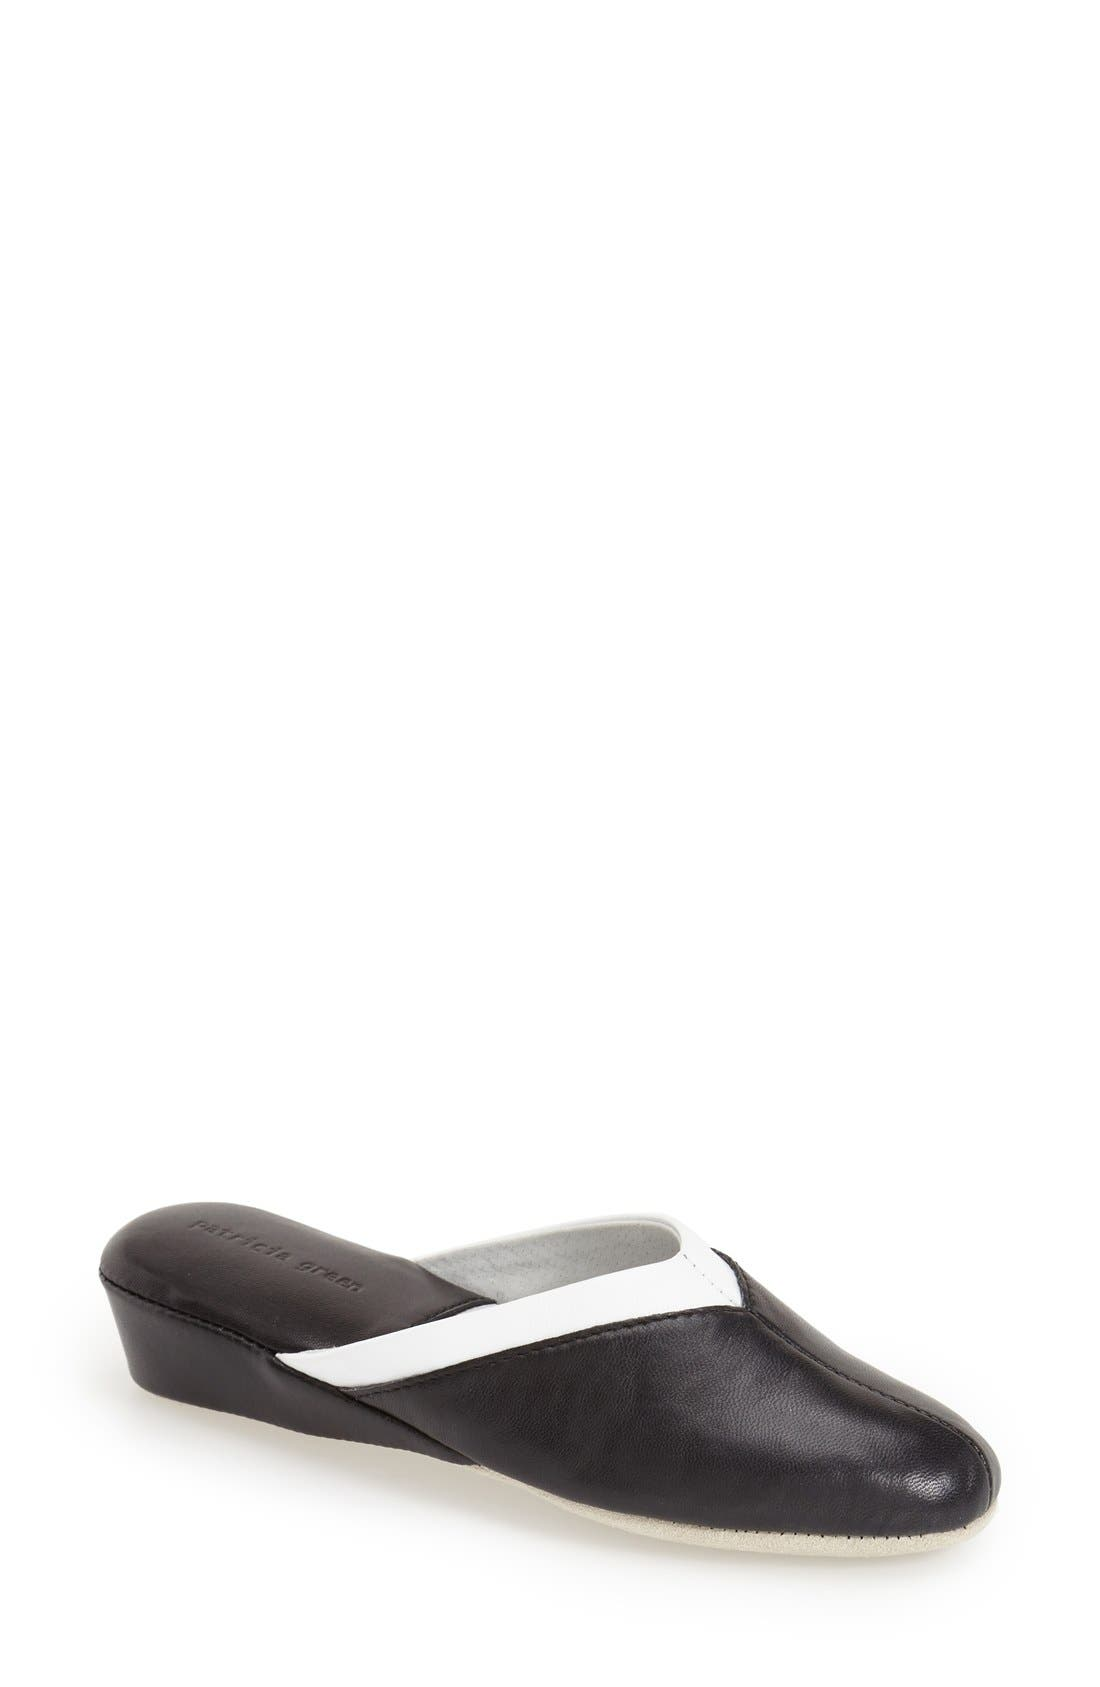 'Valerie' Wedge Mule Slipper,                             Main thumbnail 1, color,                             Black Leather